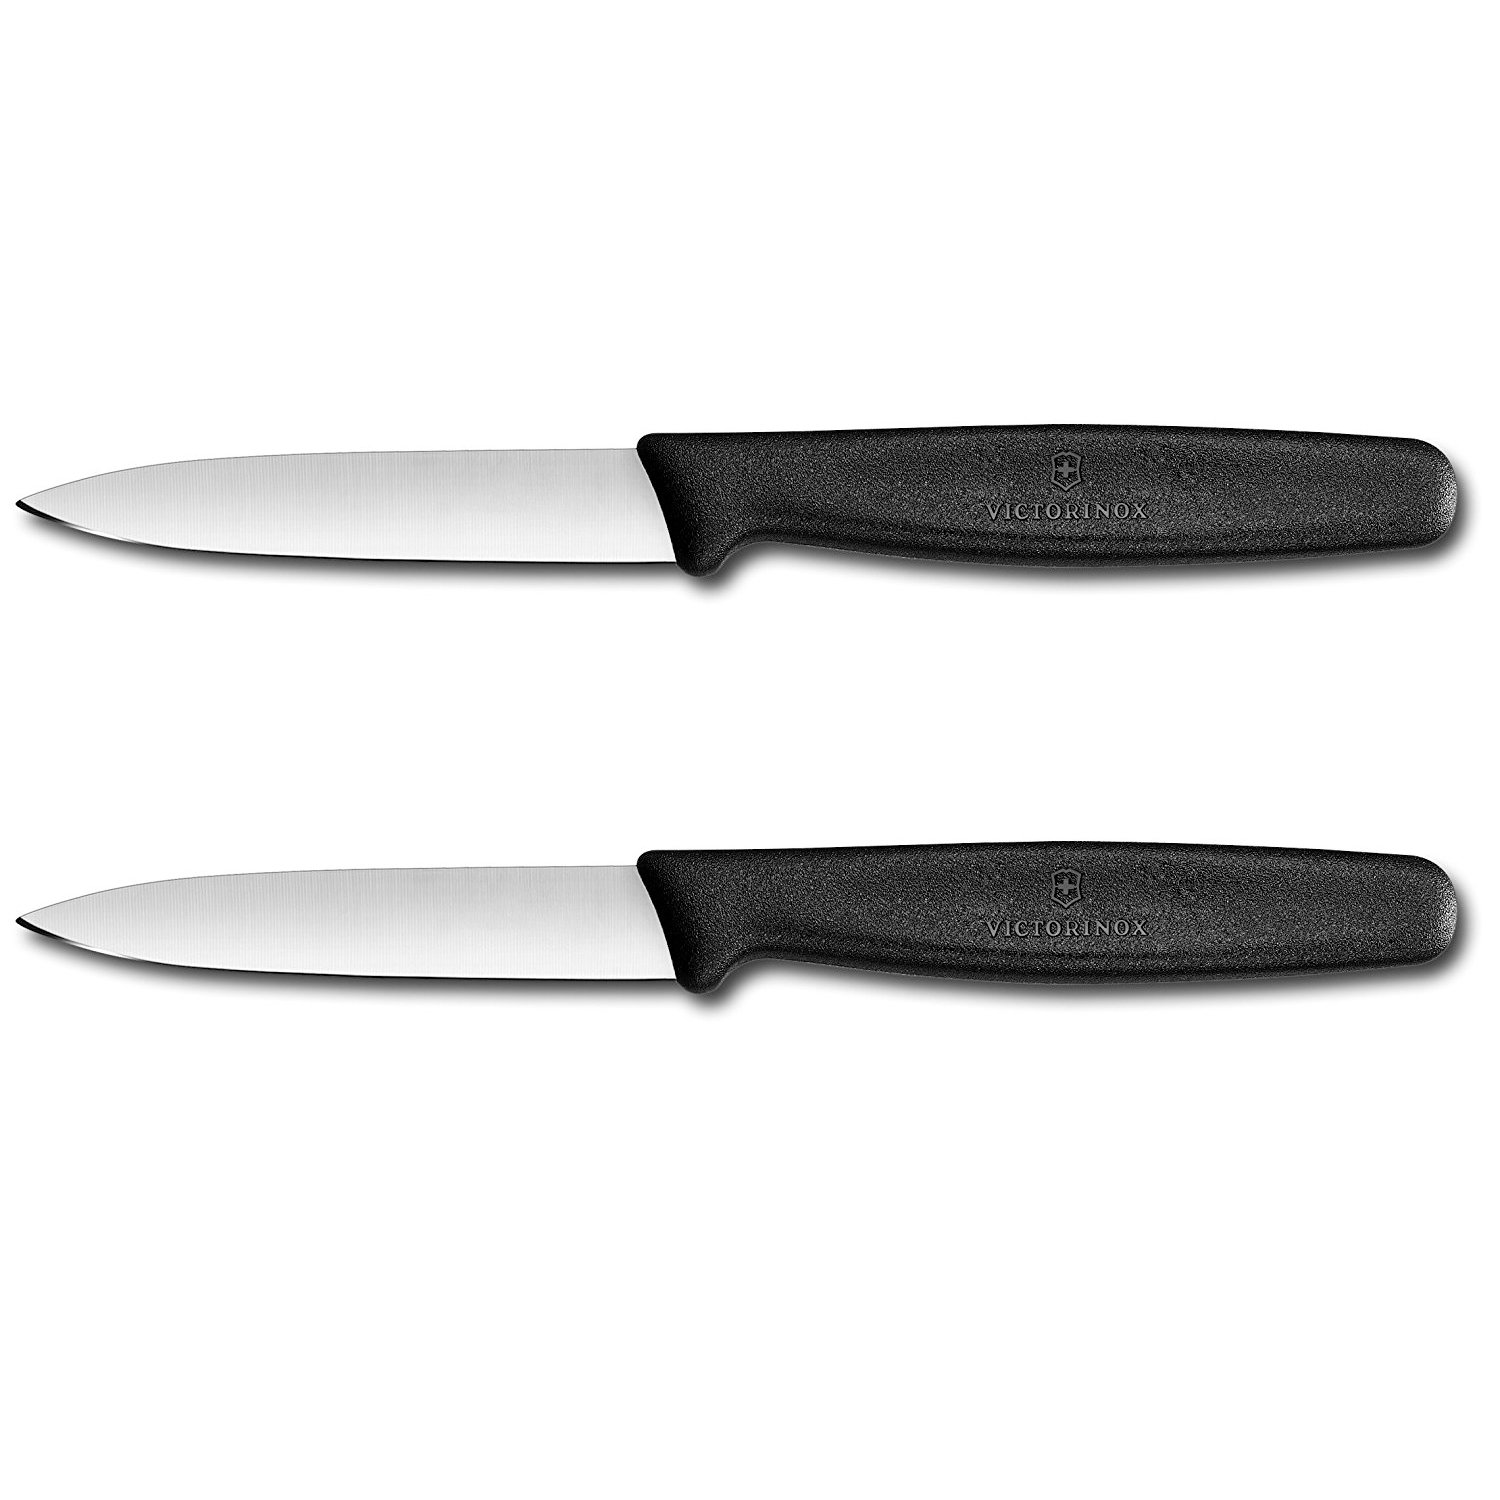 Victorinox Swiss Stainless Steel Paring Knife 3.25 Inch (Set of 2) Black Straight Edge, Spear Point